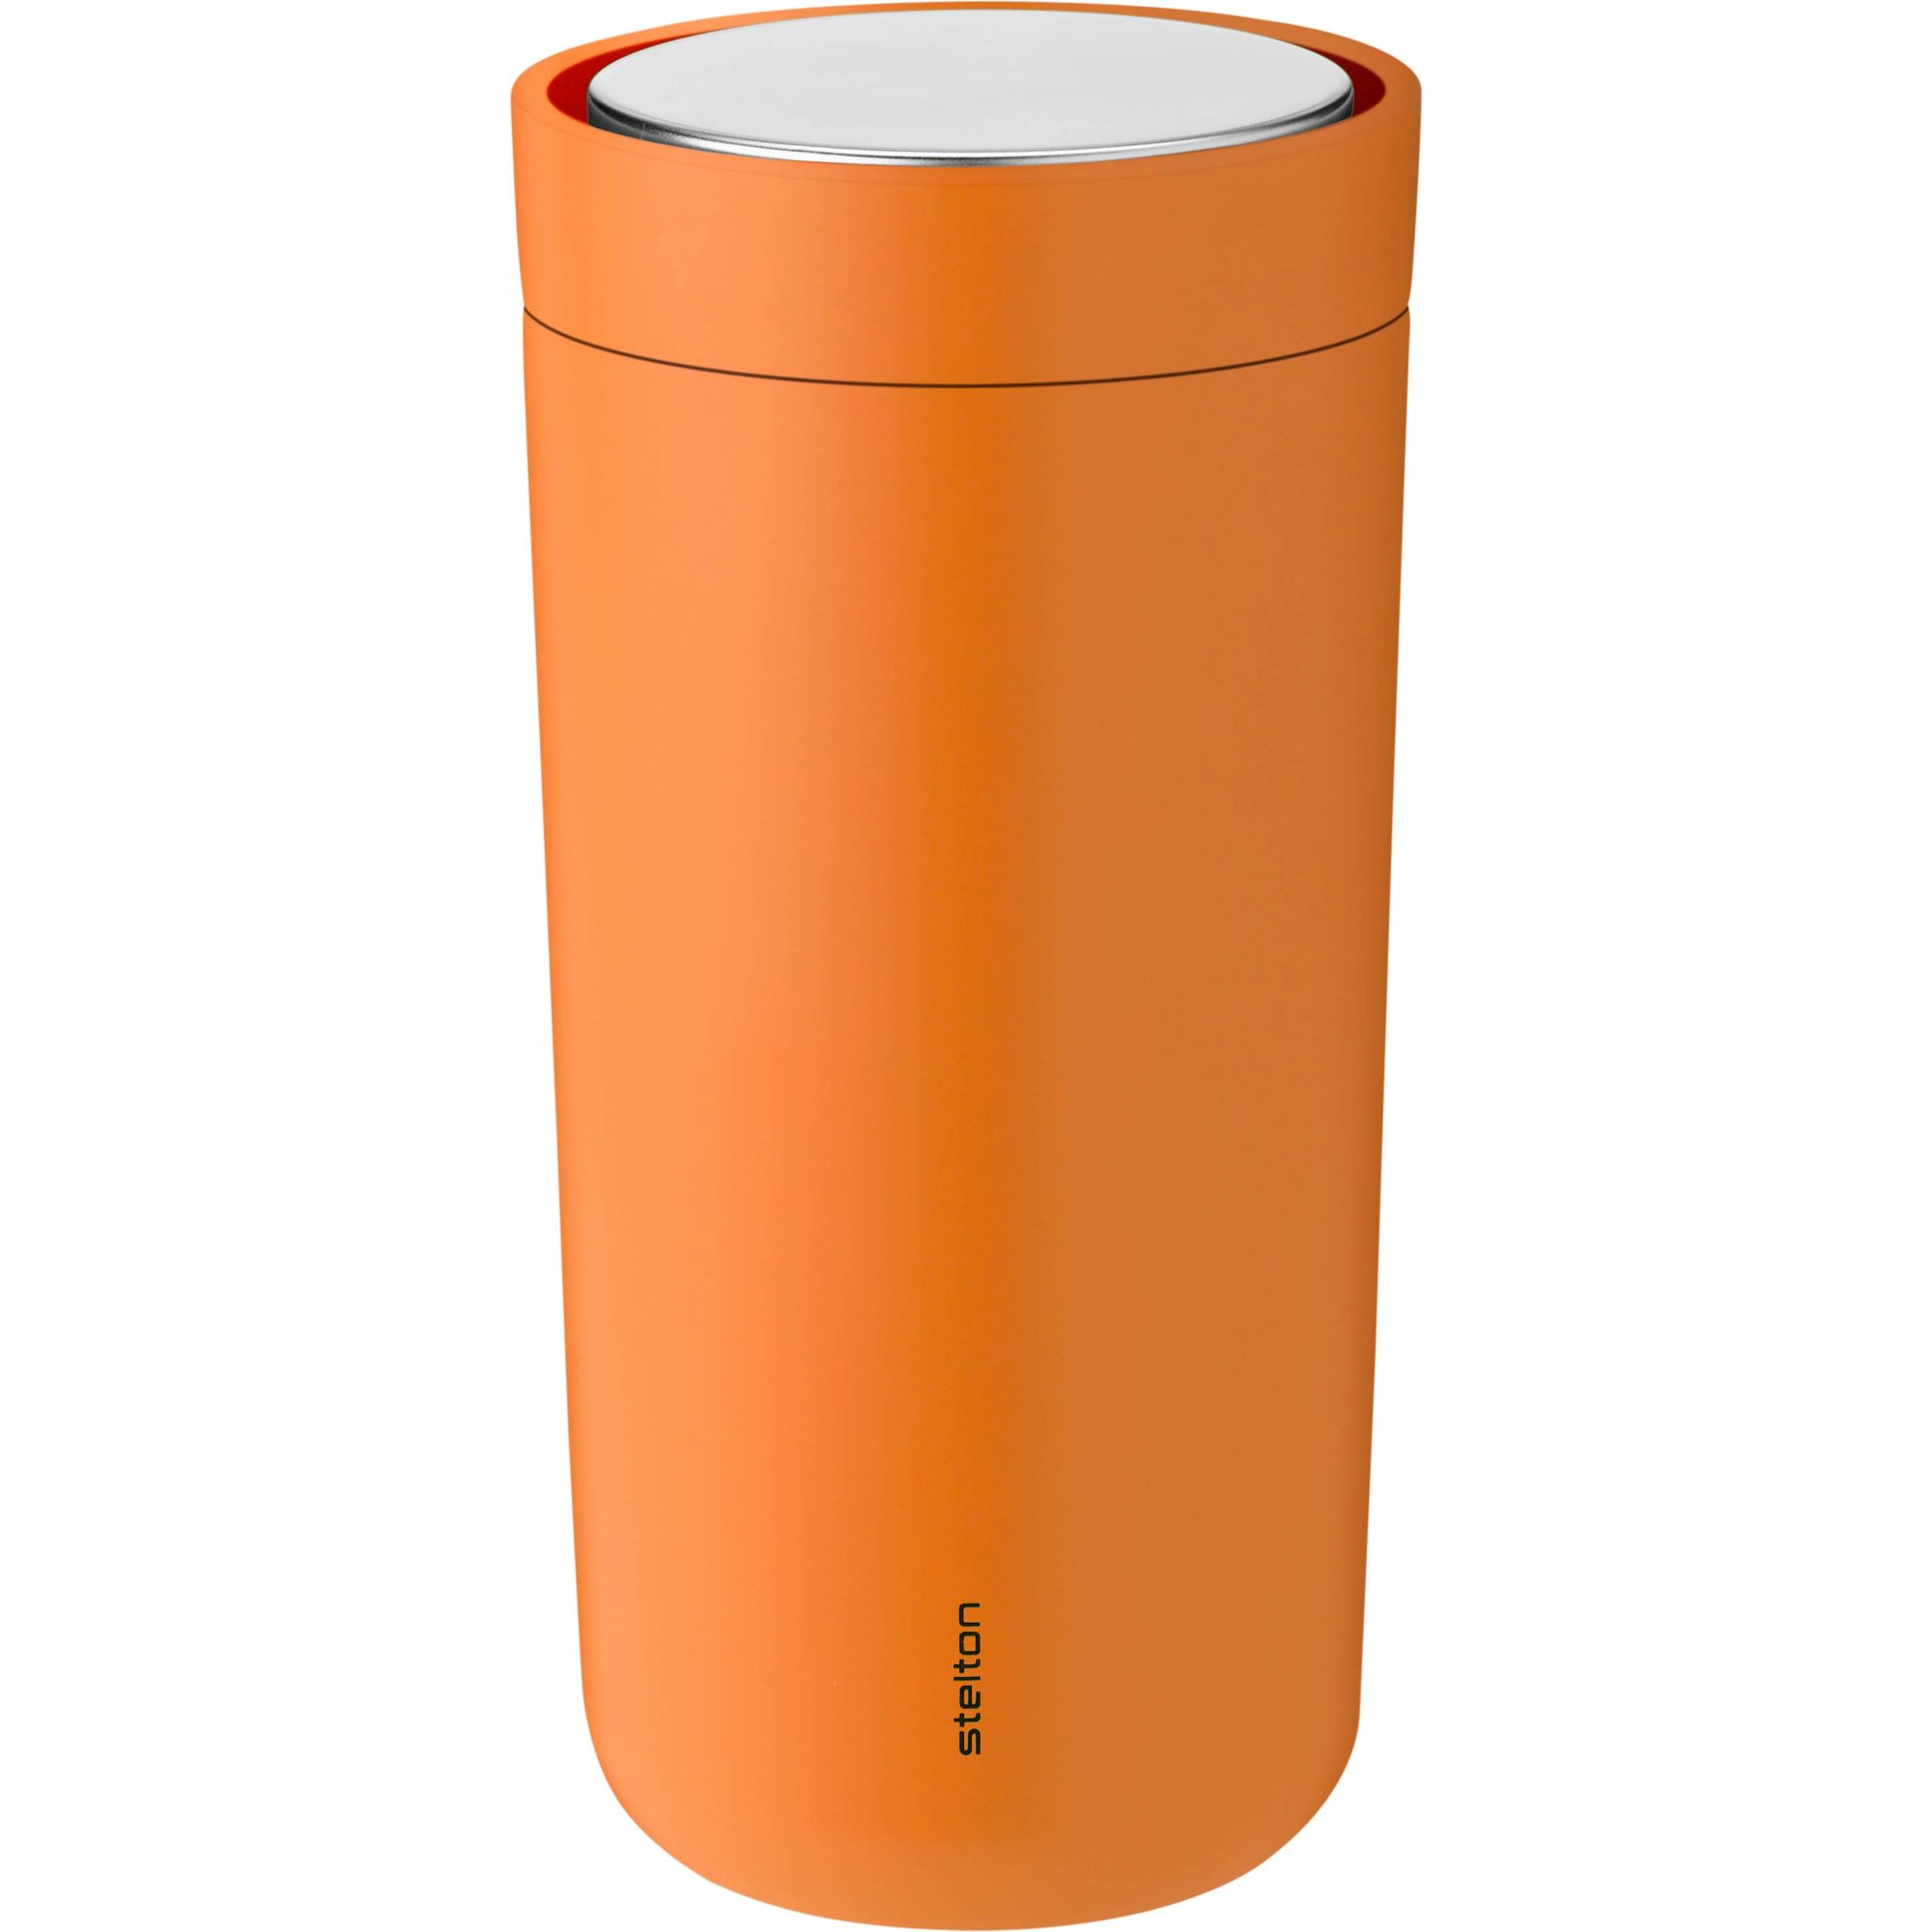 Stelton To Go Click termoskopp 04 liter pastell orange